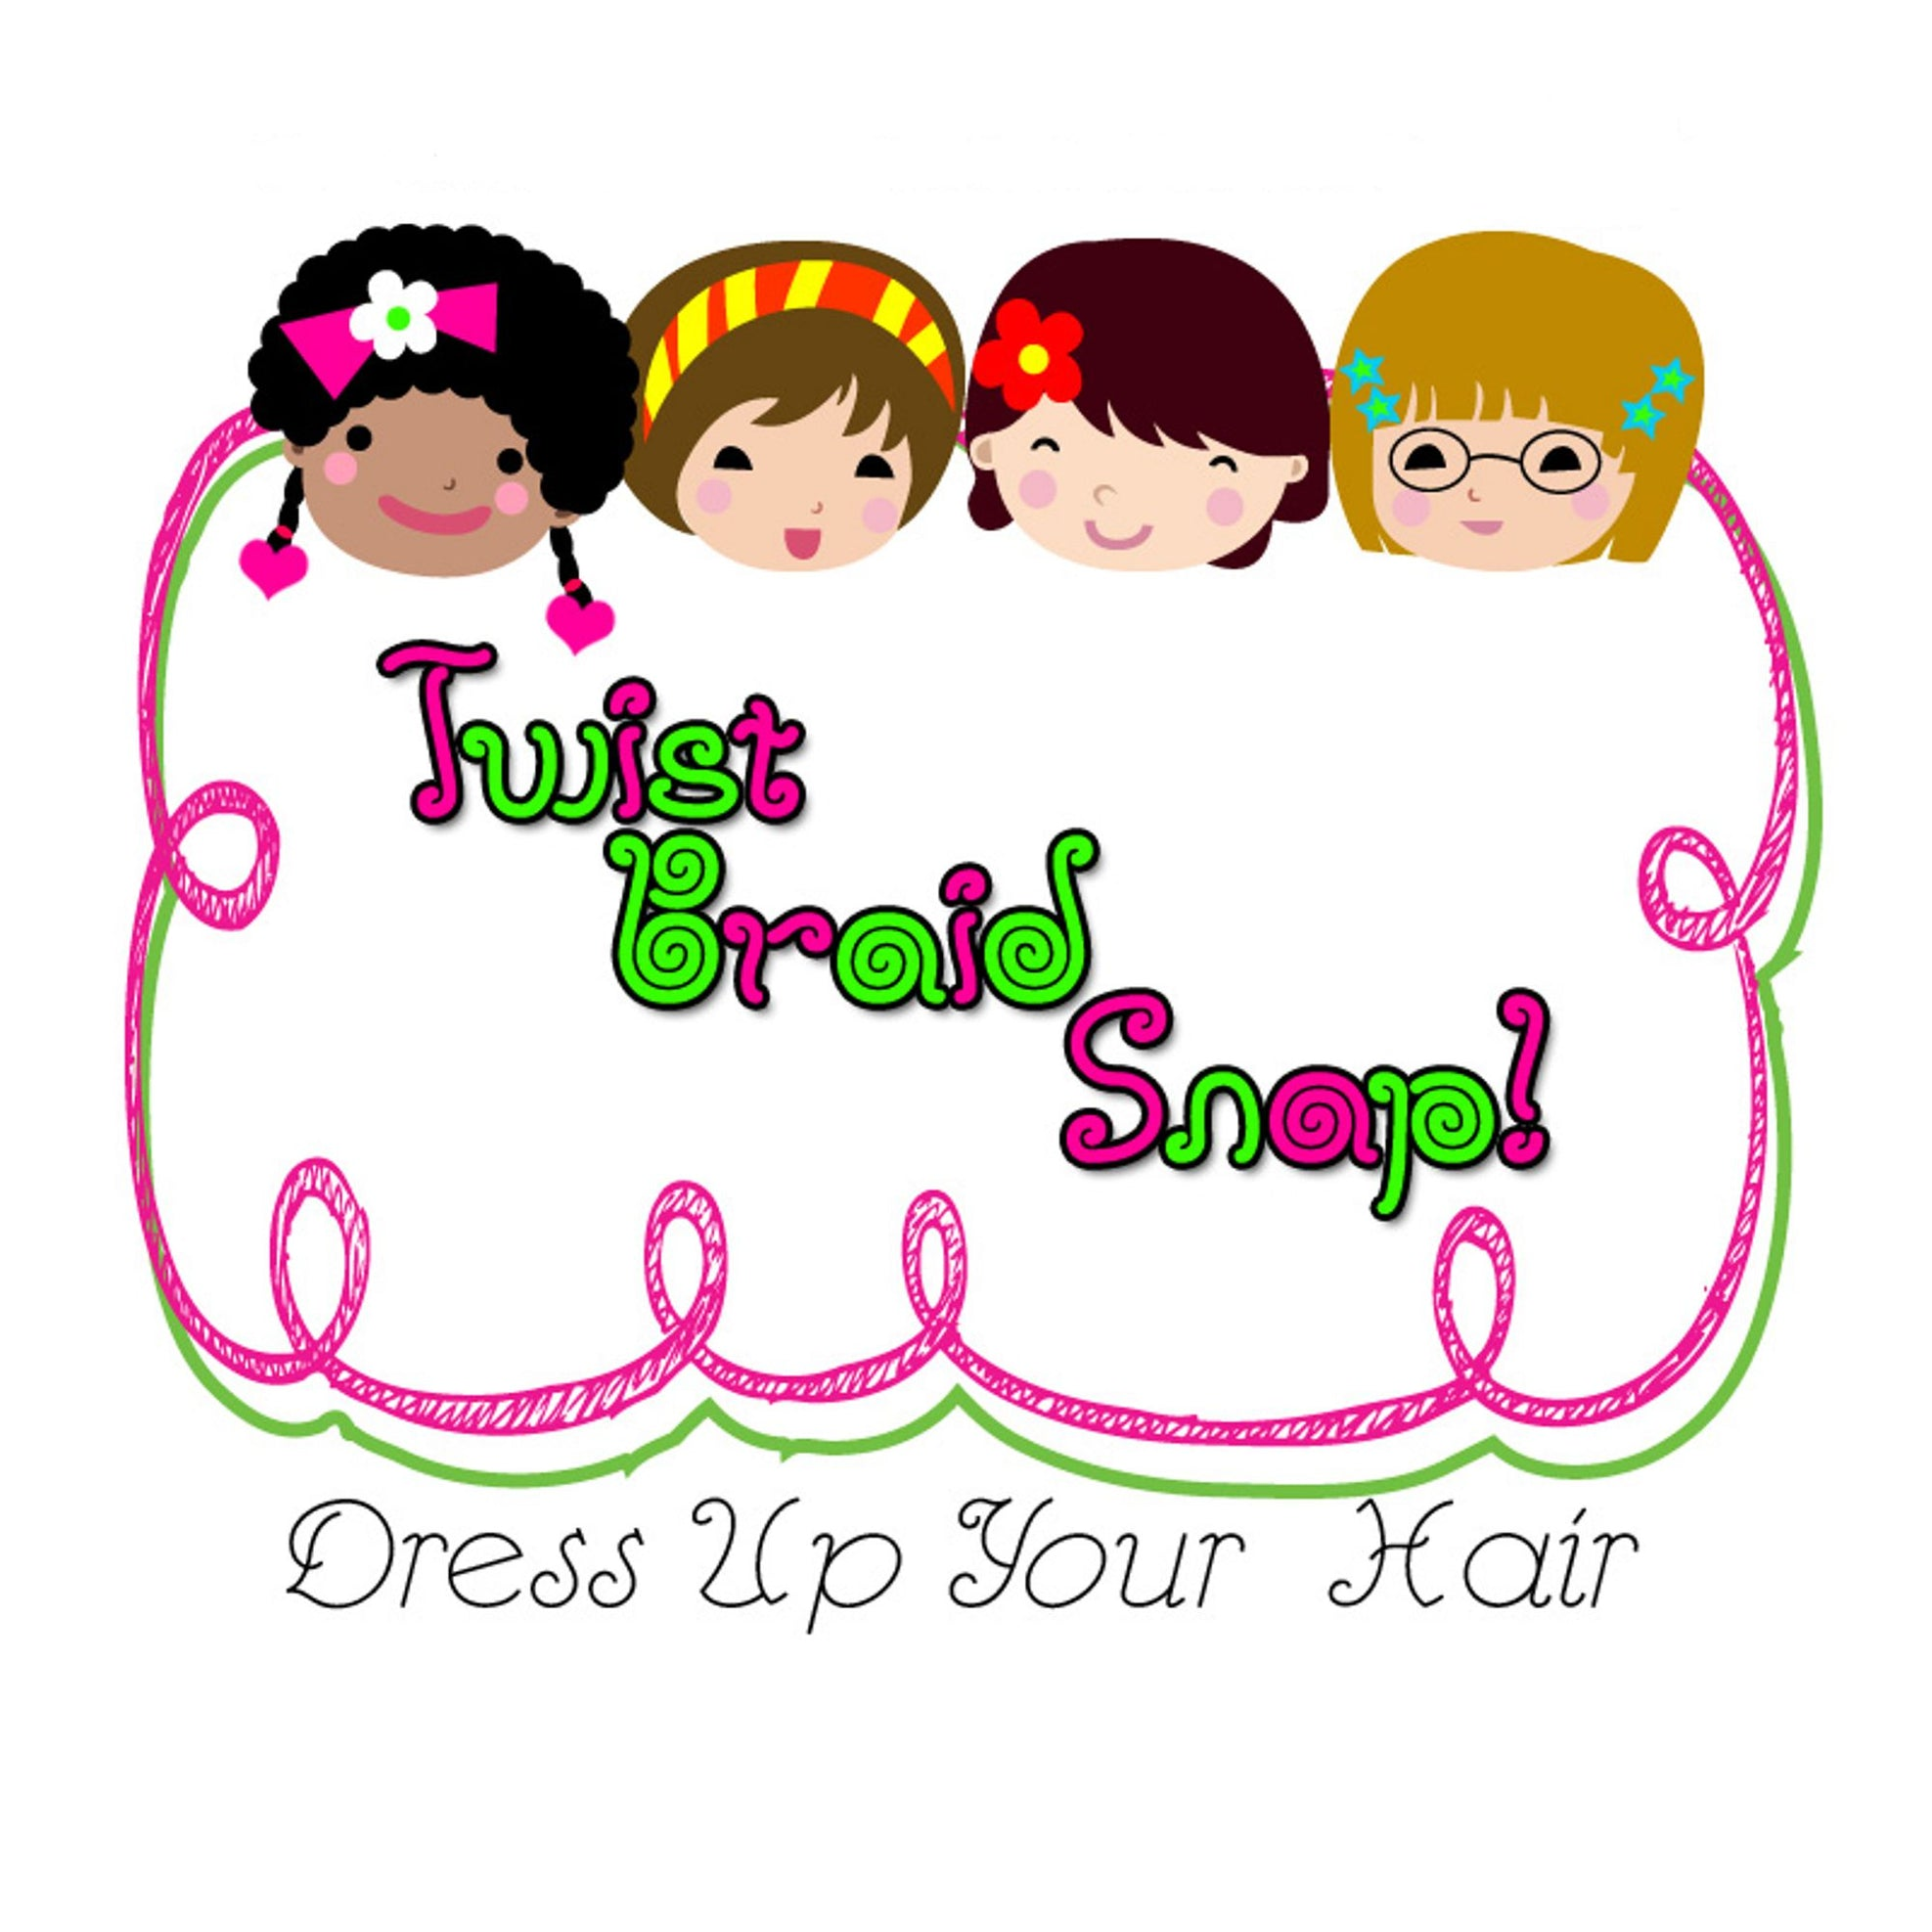 Twist Braid Snap Children's Hair Accessories